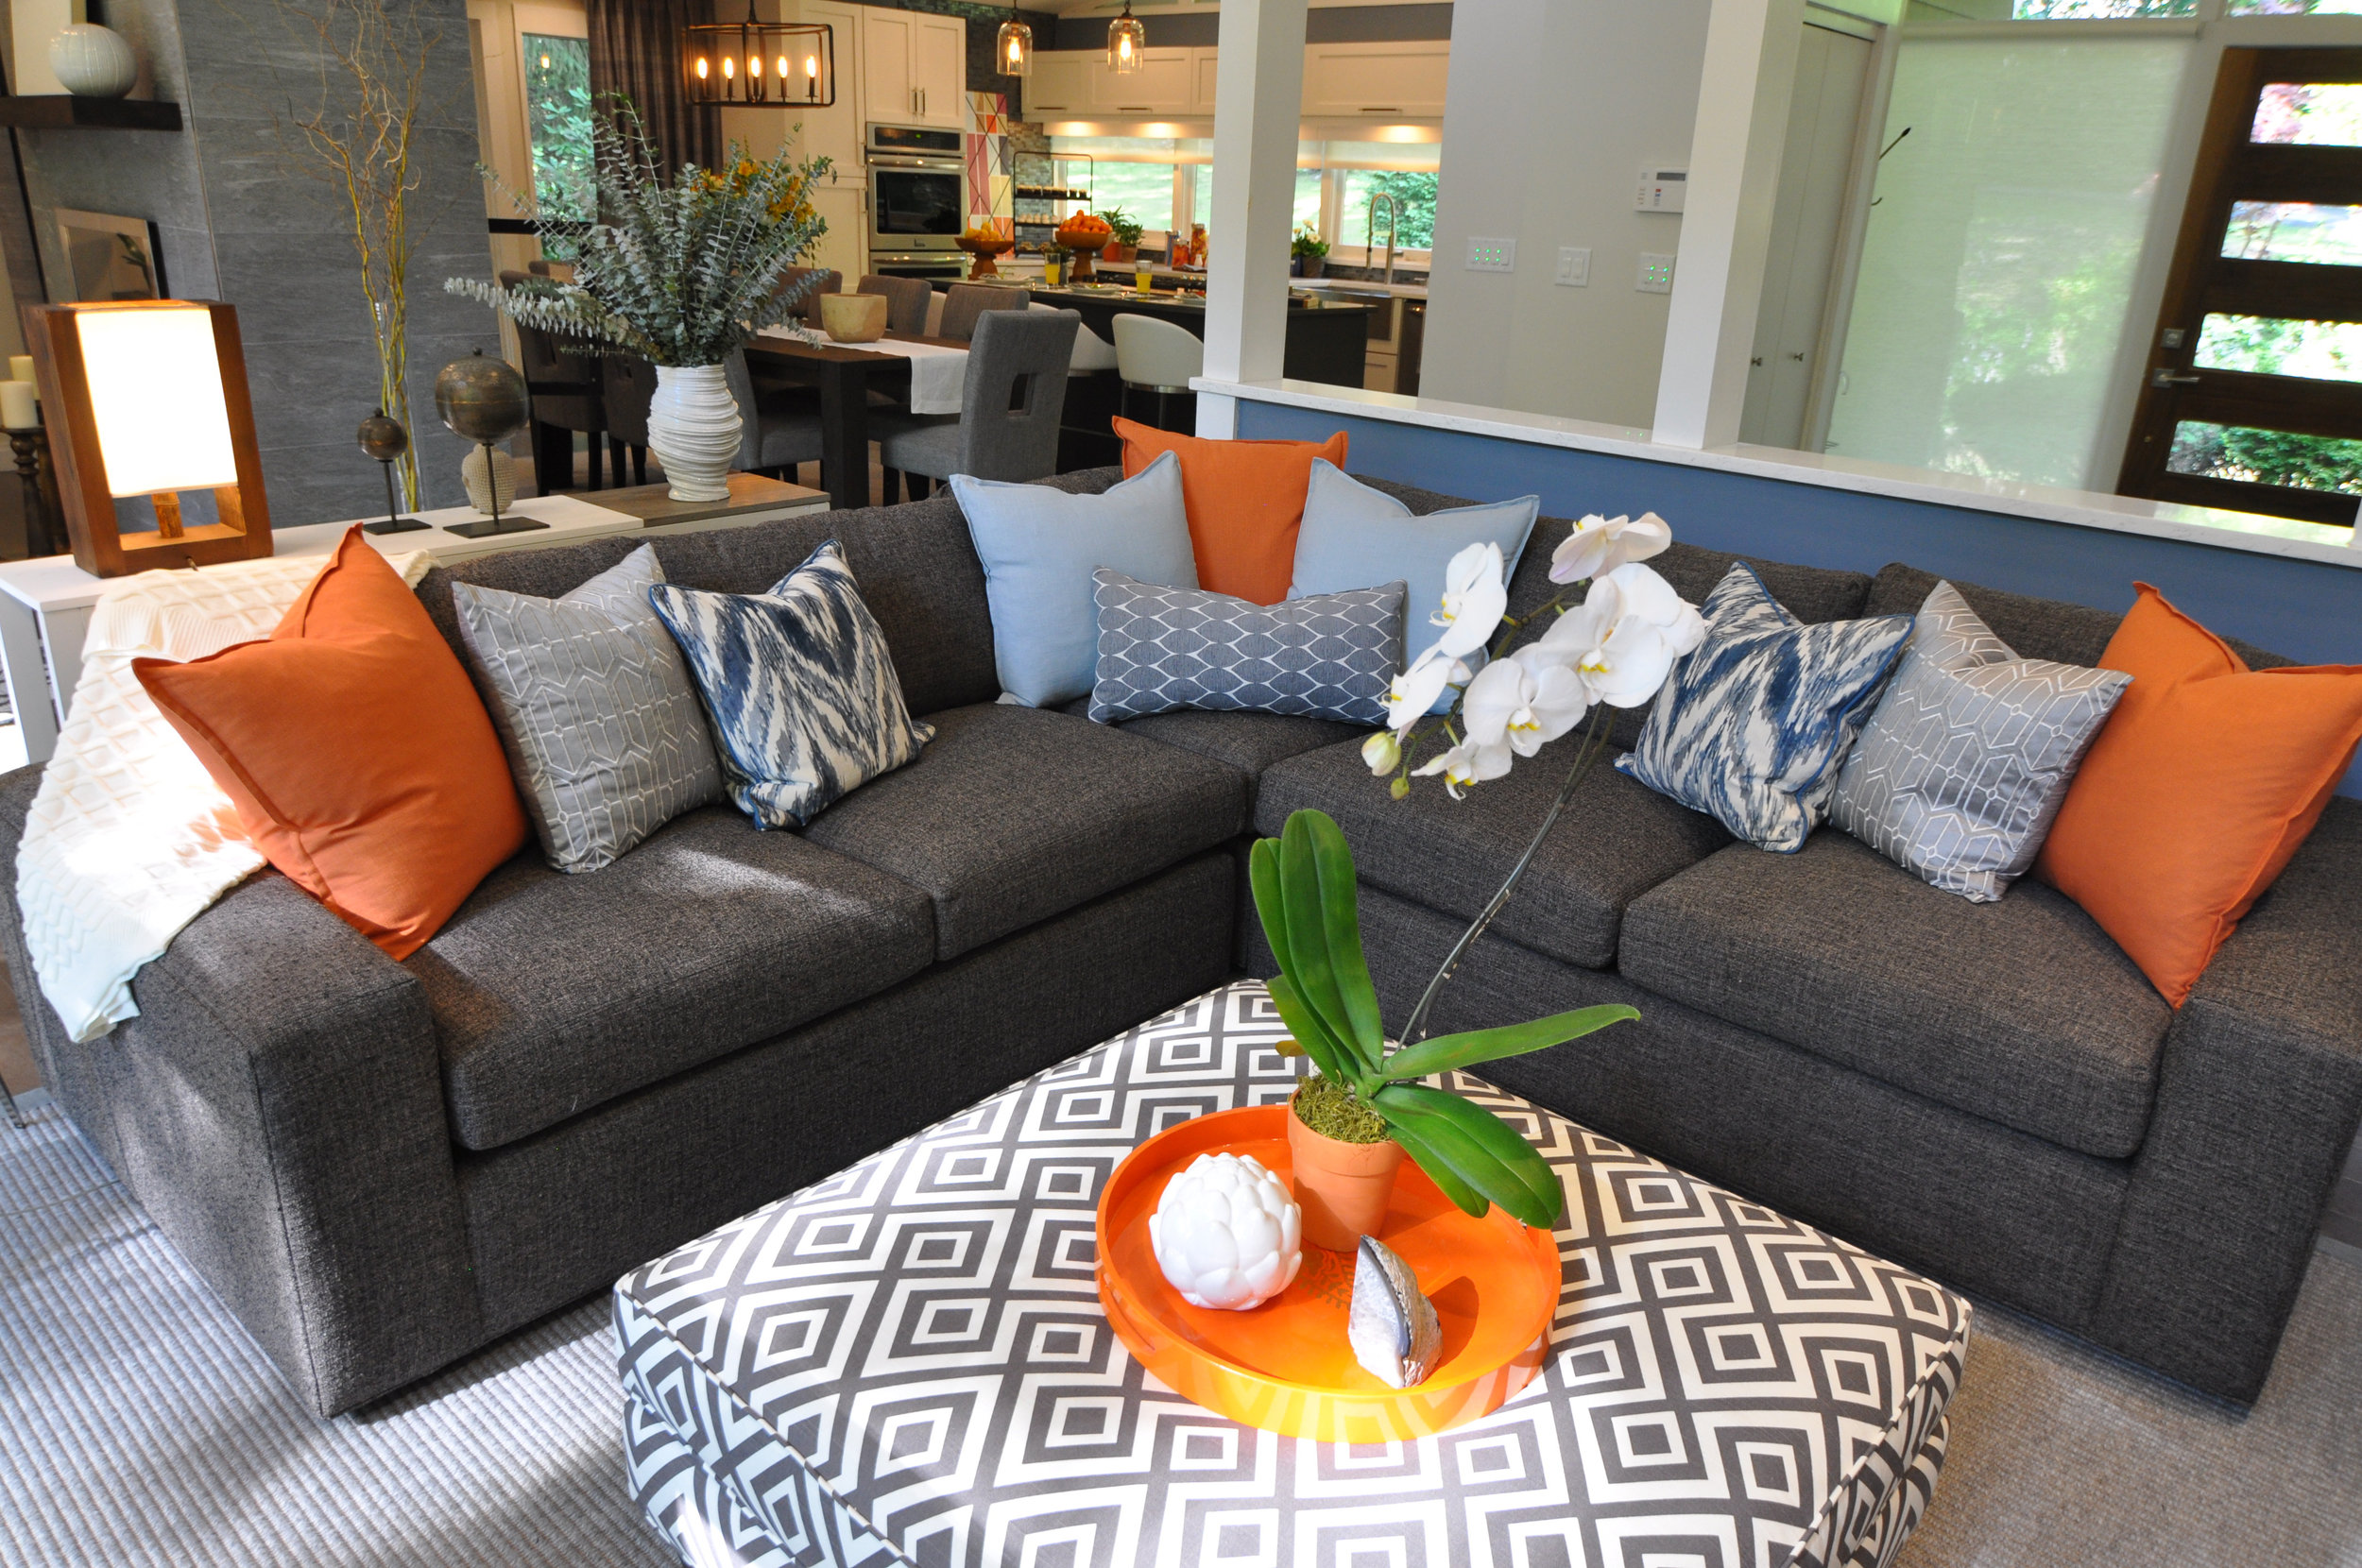 Kim A Mitchell_Design Lead_The Property Brothers_Season 6_Episode 9_Living Room_Sectional_Pillows_Airs_Feb_15_2017.jpg